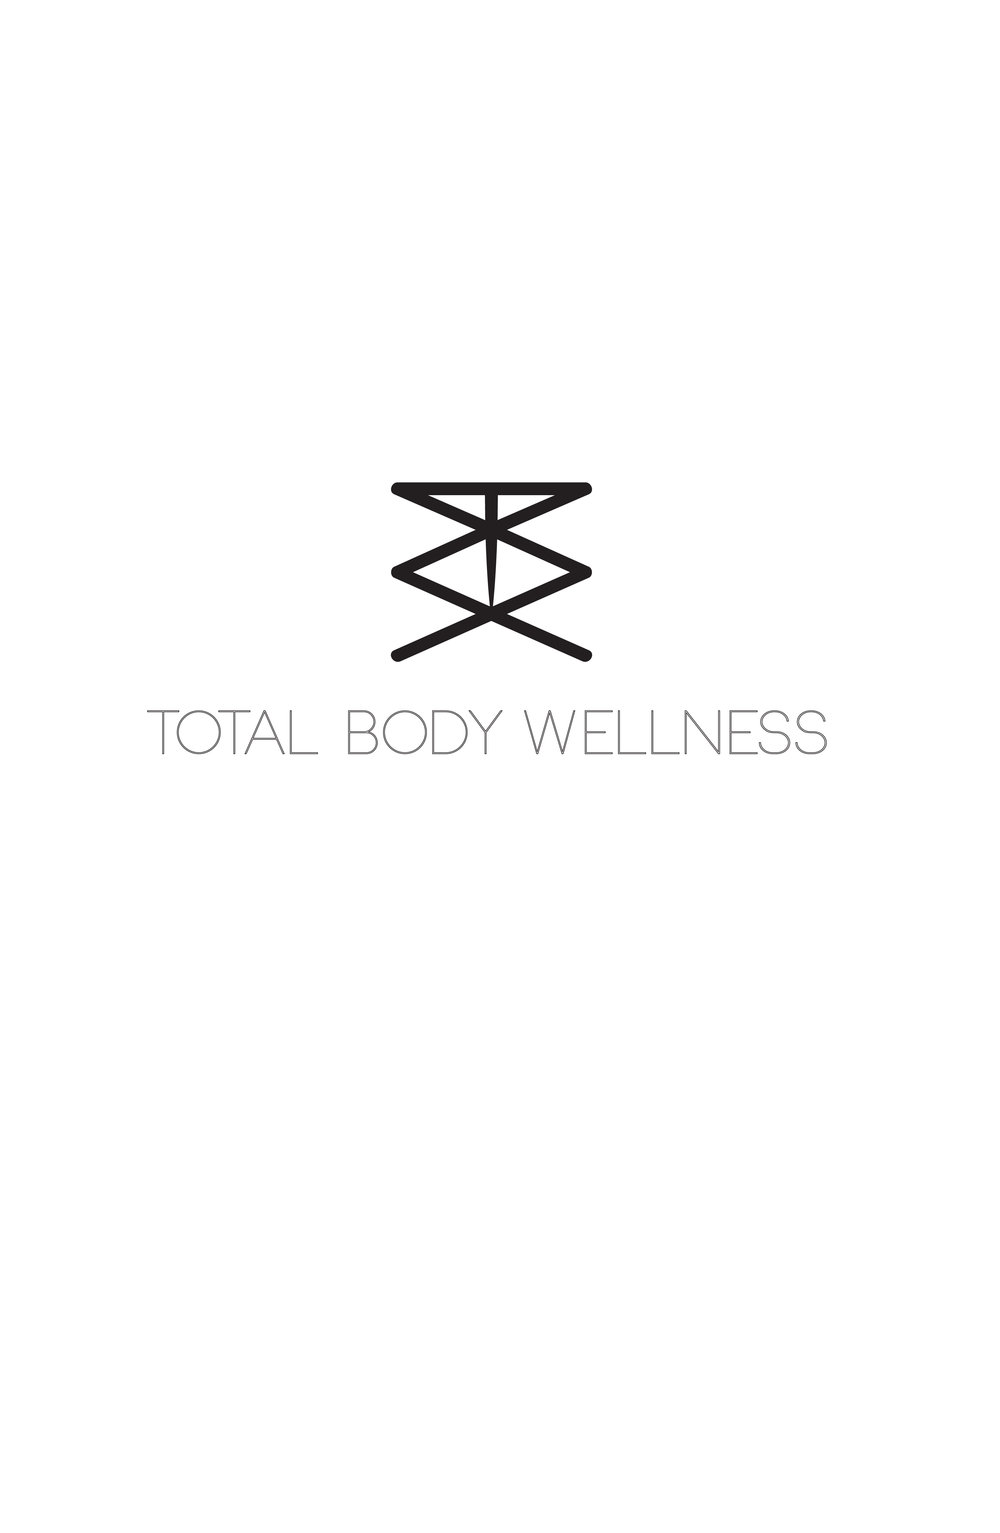 Total Body Wellness Logo